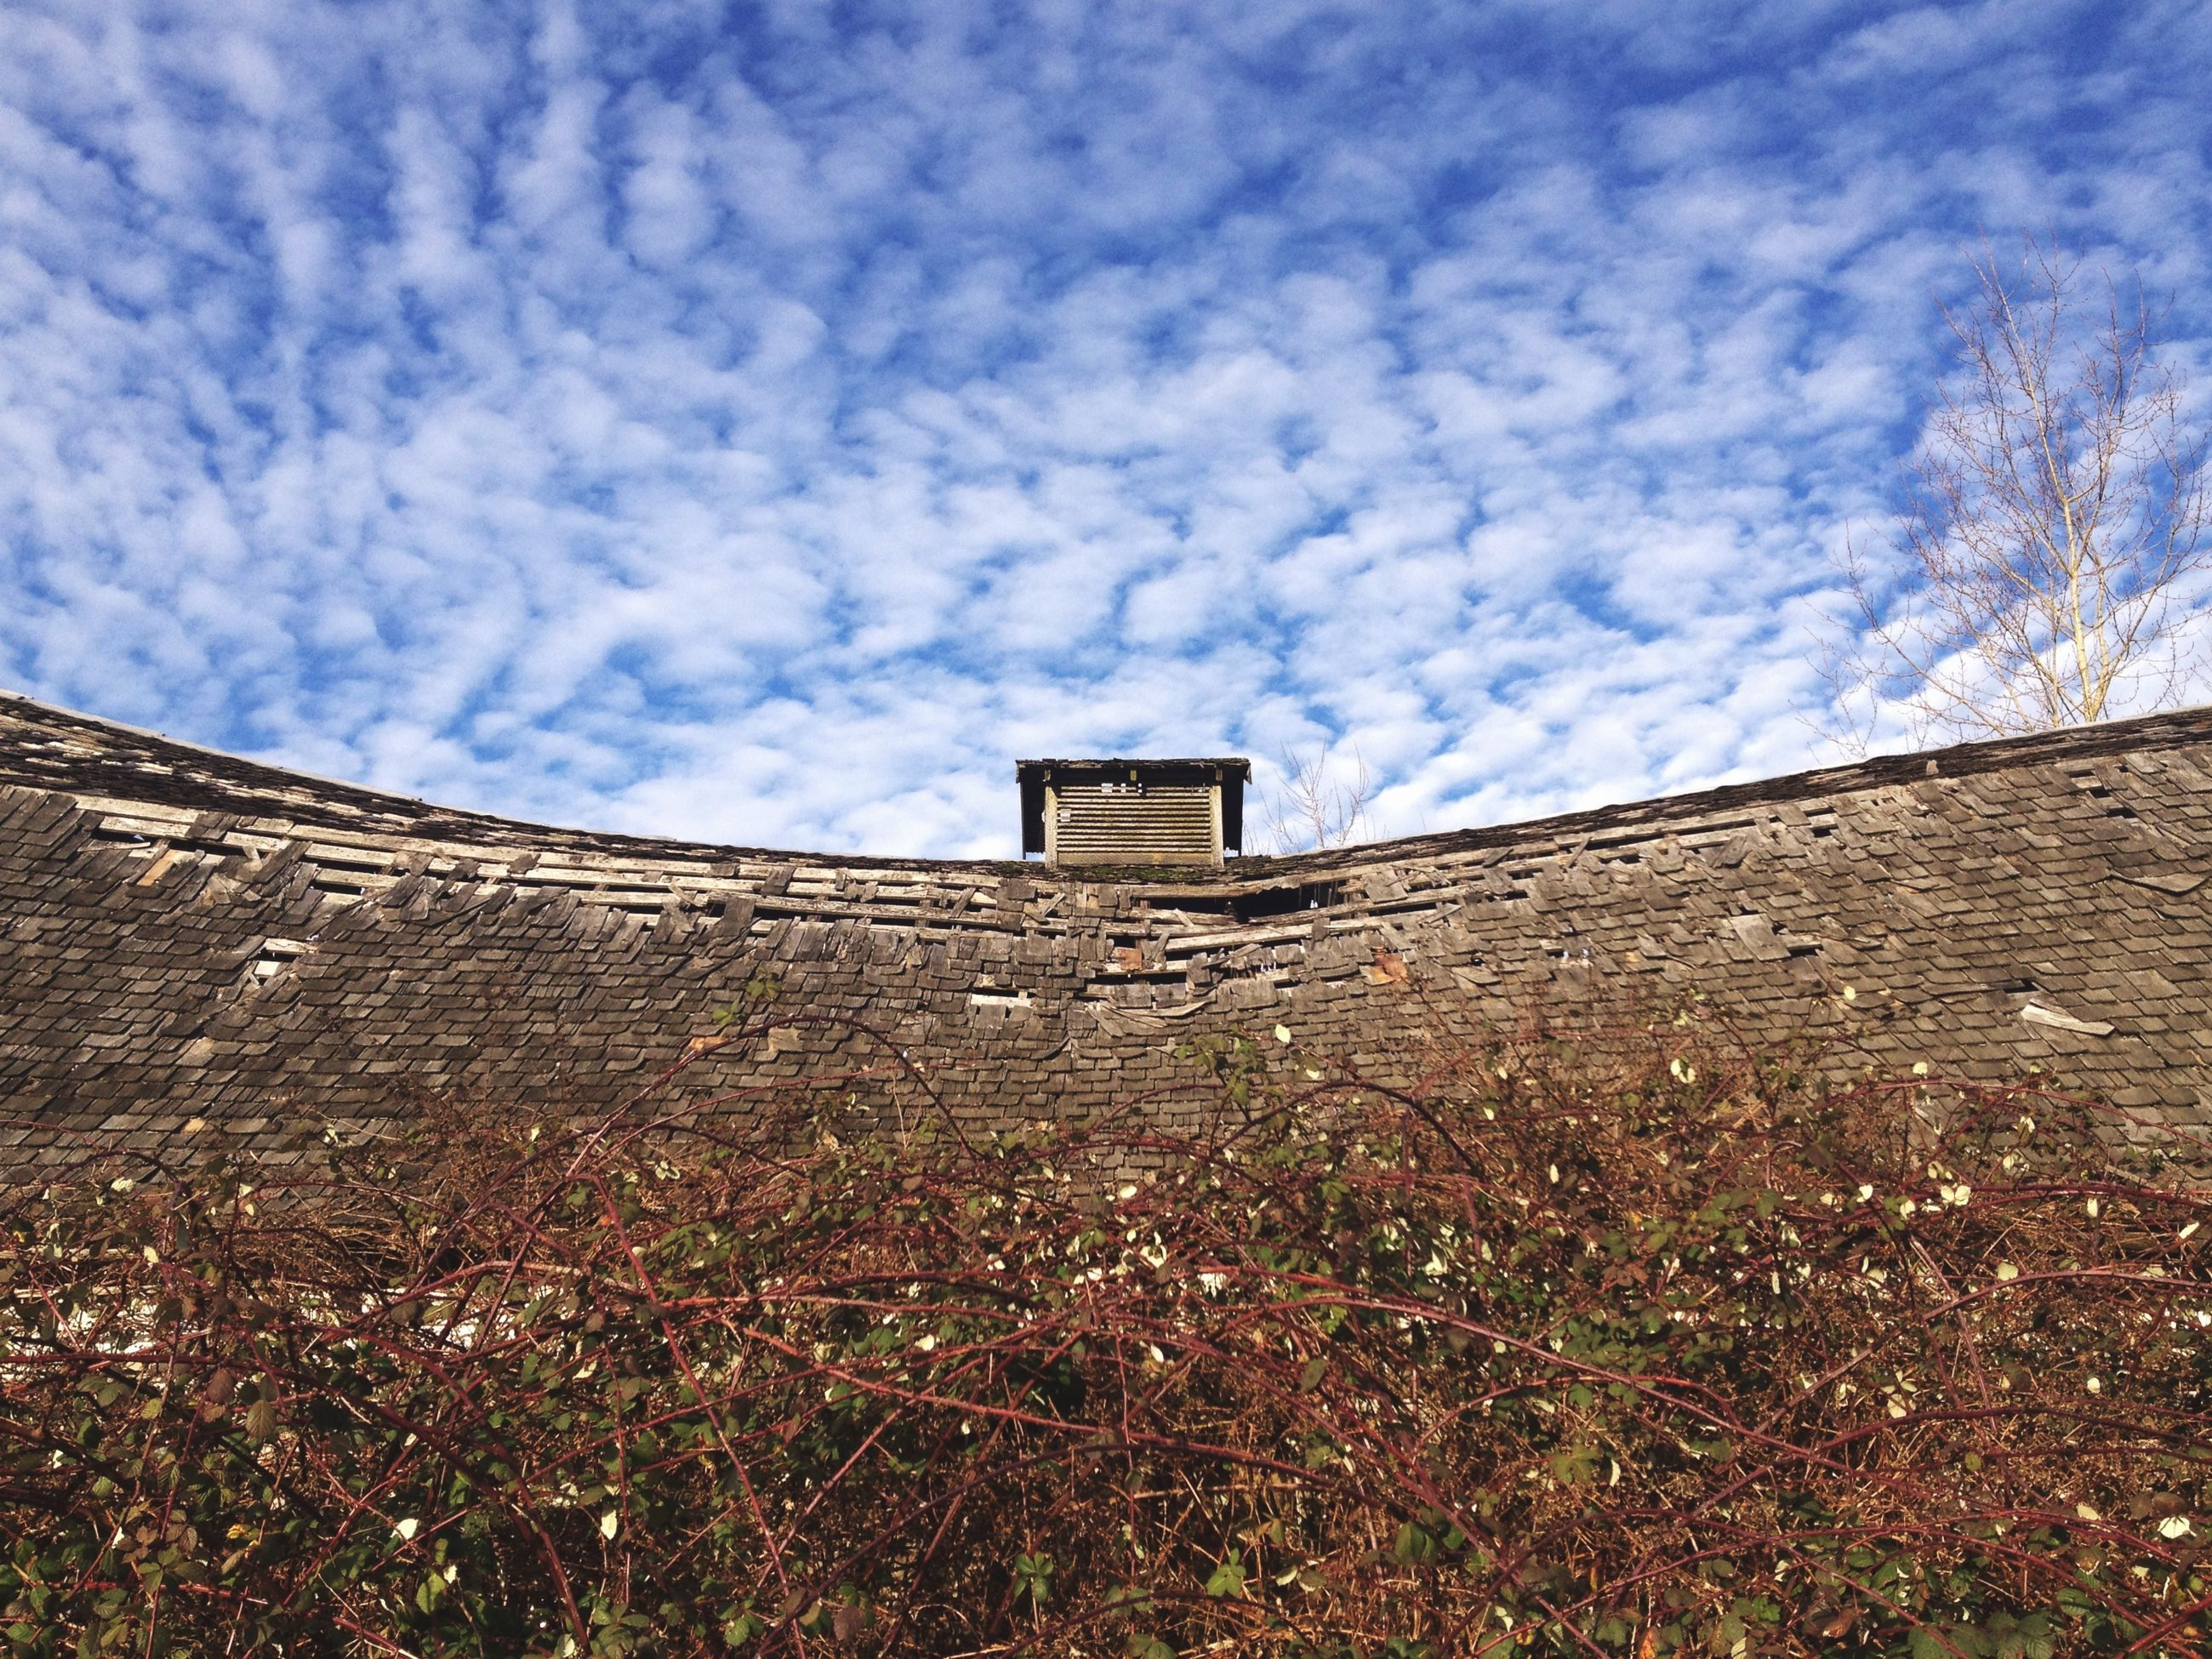 architecture, built structure, building exterior, sky, cloud - sky, low angle view, cloud, cloudy, house, day, old, wall - building feature, outdoors, no people, stone wall, blue, building, abandoned, history, nature